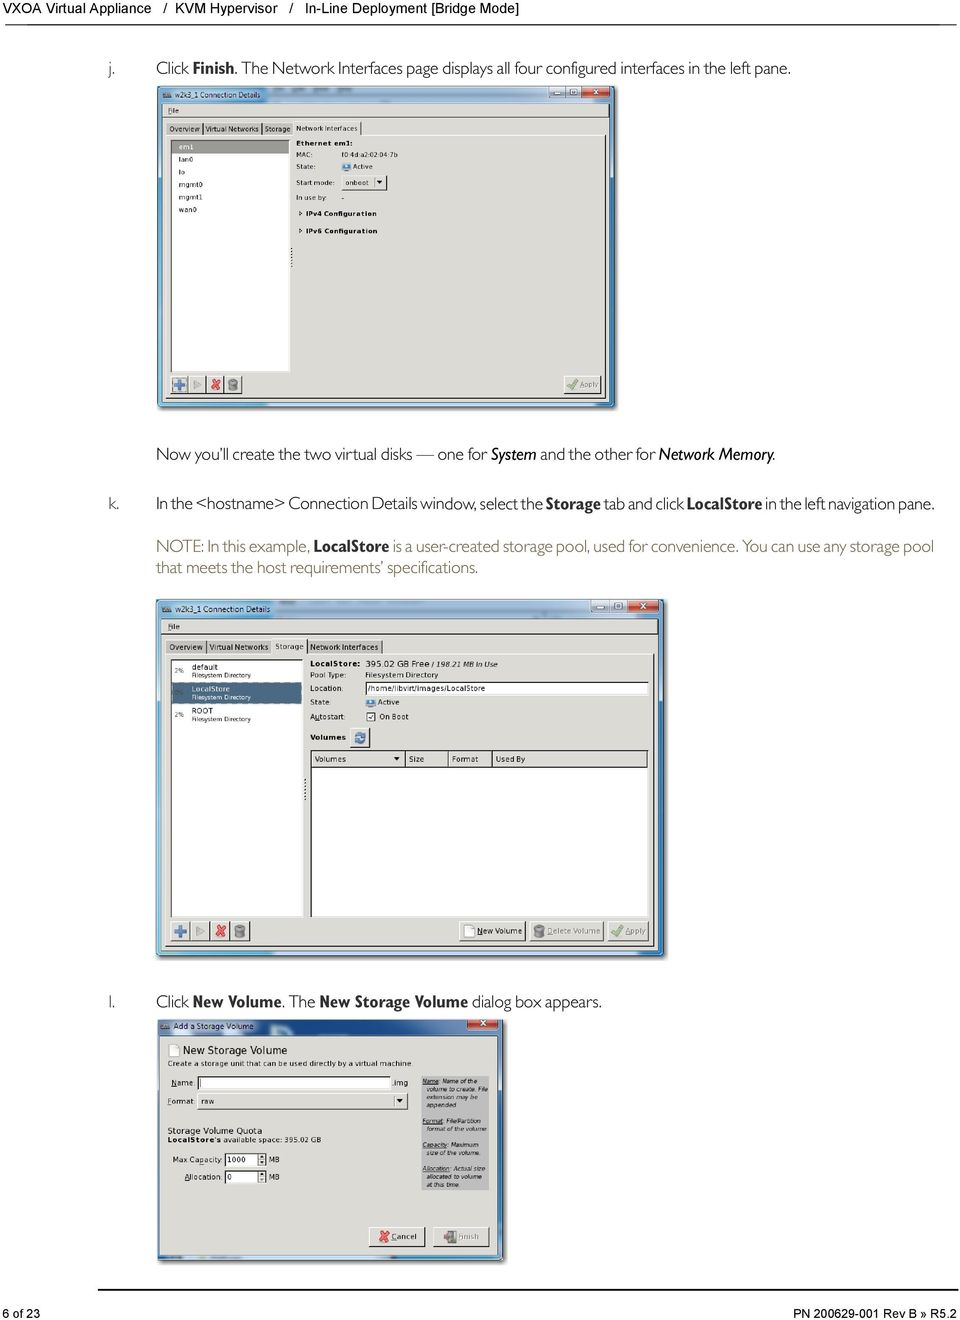 Now you ll create the two virtual disks one for System and the other for Network Memory. k.